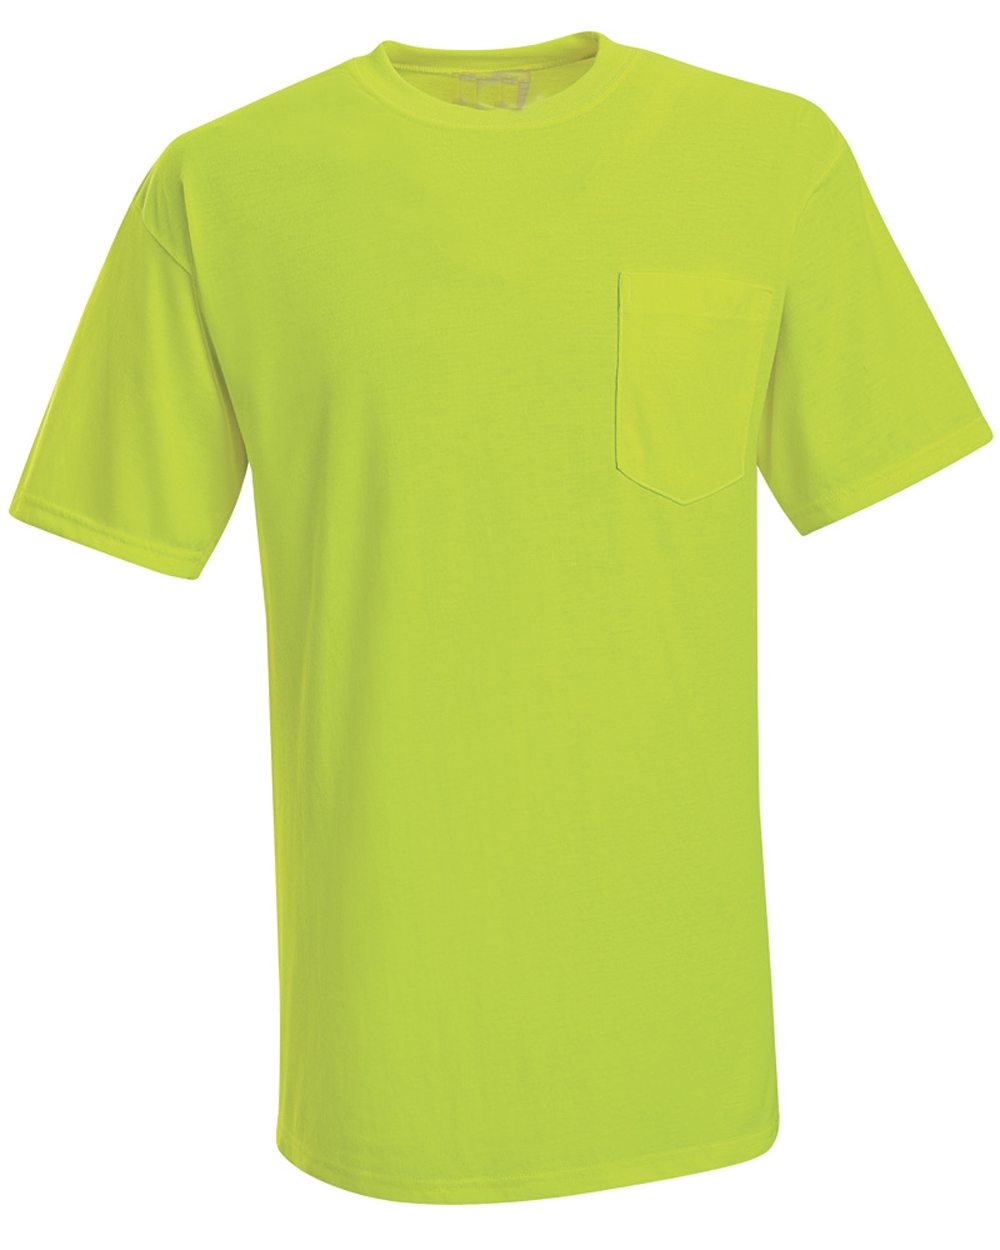 Red Kap Industrial SYO6 Enhanced Visibility T-Shirt with a Pocket